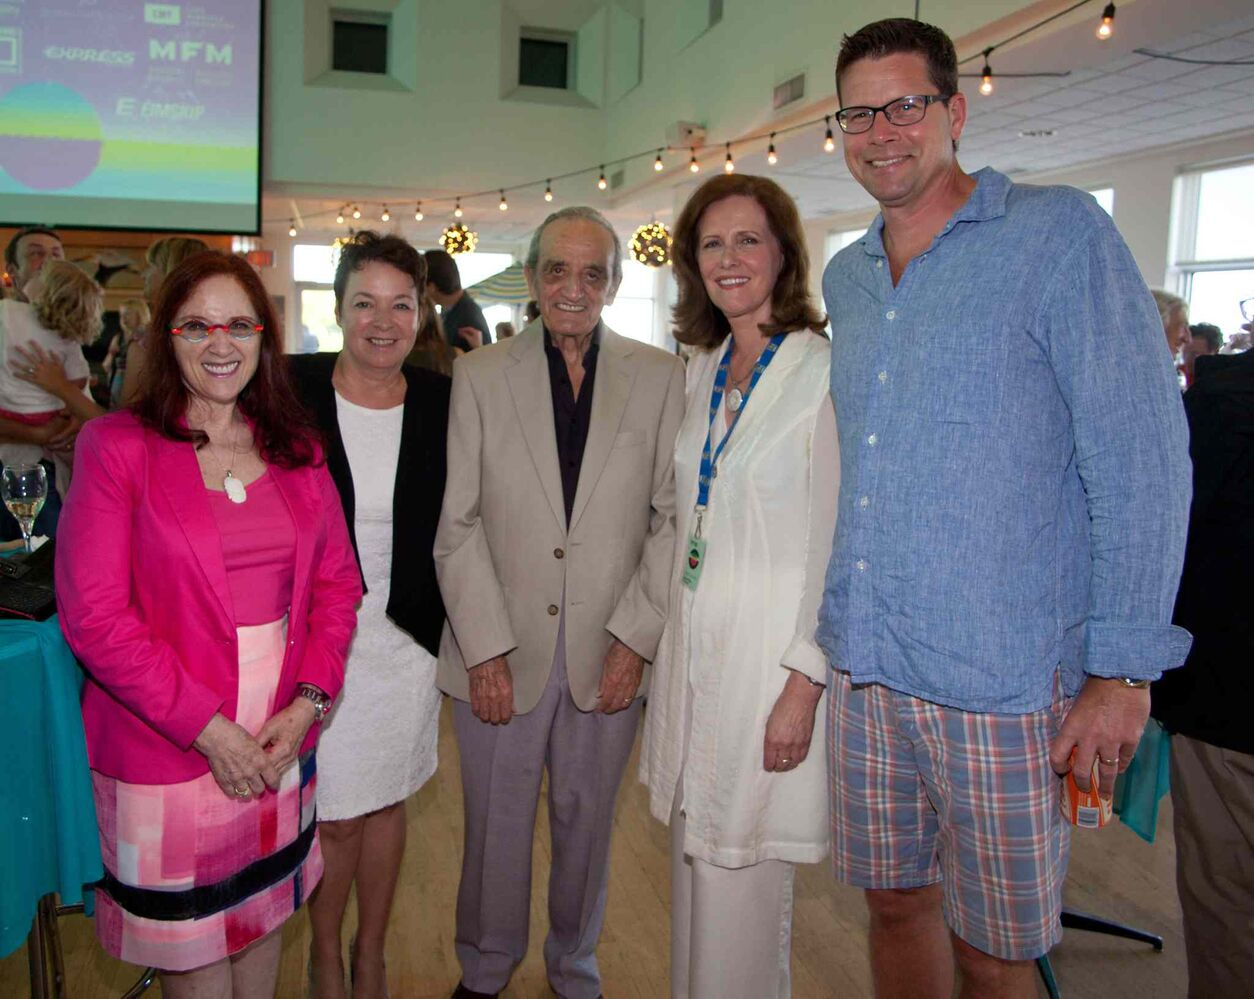 An opening reception for the 15th annual Gimli Film Festival was held Wednesday, July 22, 2015 at the Waterfront Centre. Pictured, from left, are Naomi Levine, Michelle Aitkenhead, Art Mauro, Sen. Janis Johnson and David Filmon.  (JOHN JOHNSTON FOR THE WINNIPEG FREE PRESS)